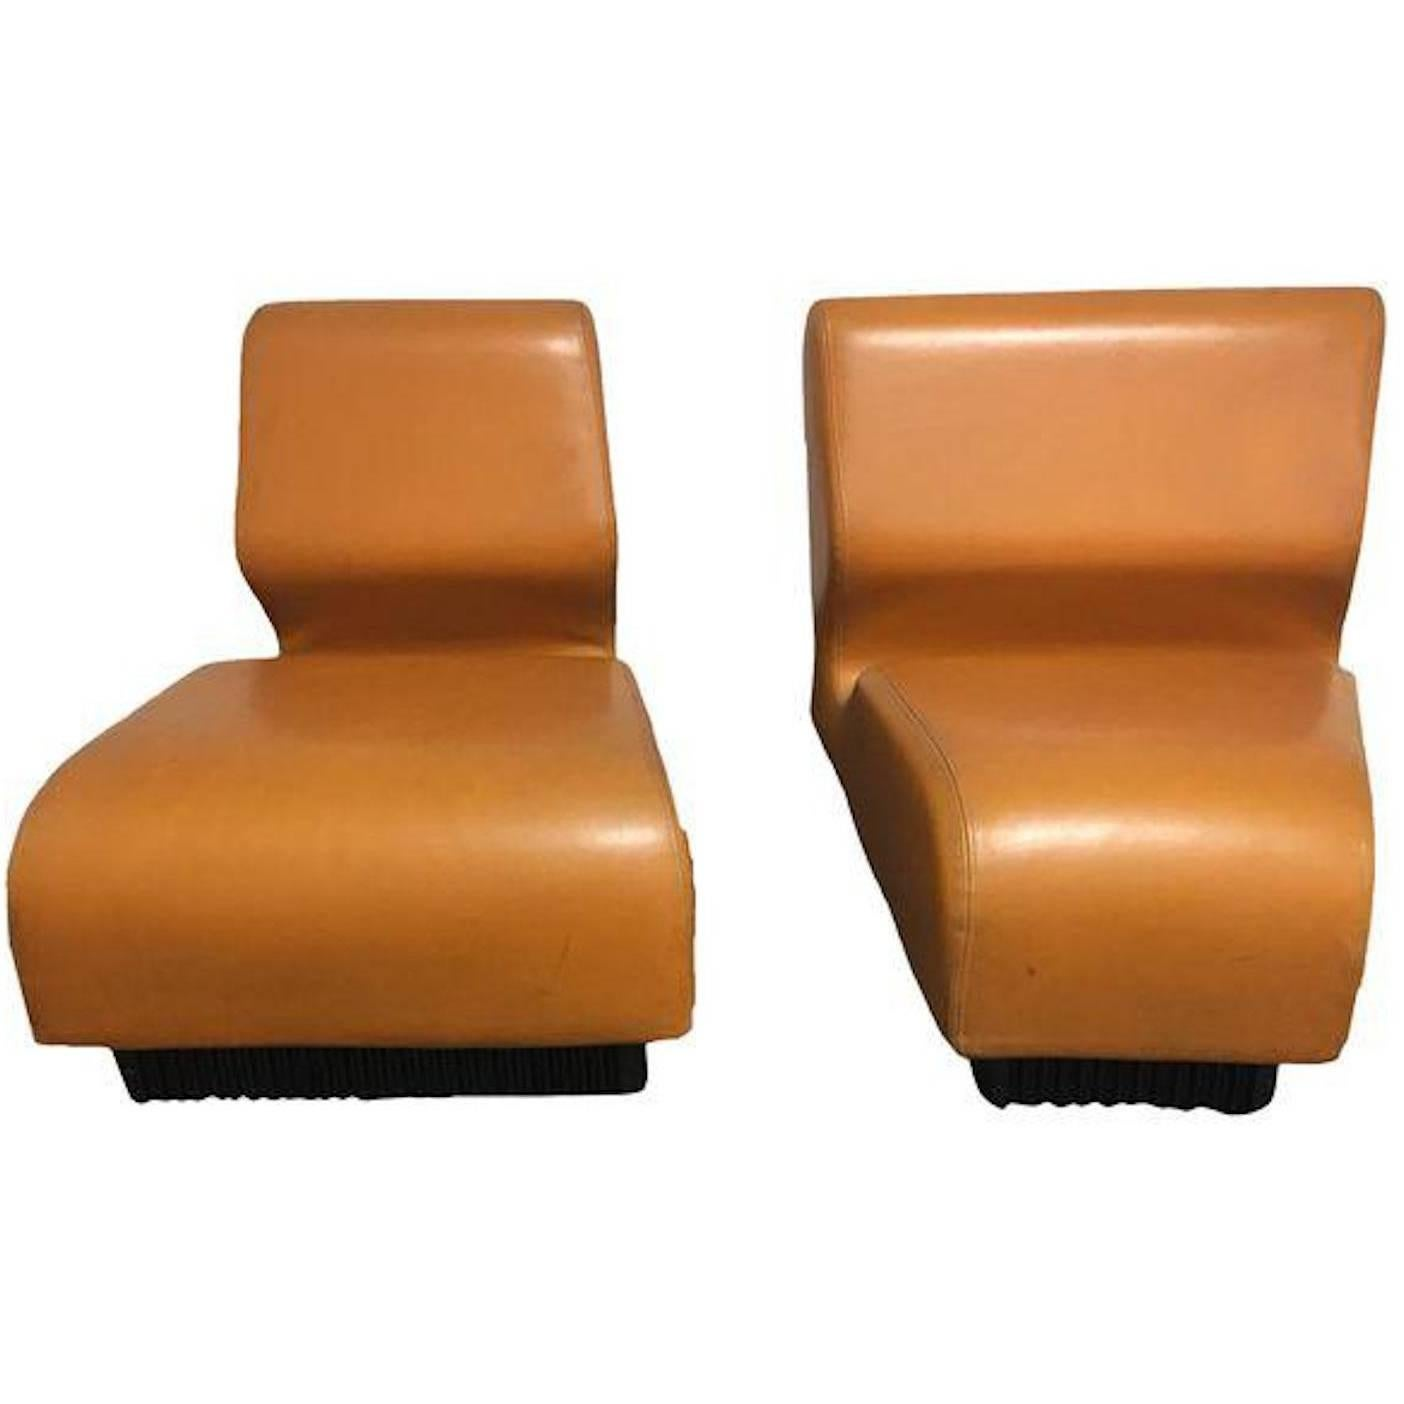 Awesome Pair Of Herman Miller Don Chadwick Modular Chairs At 1stdibs